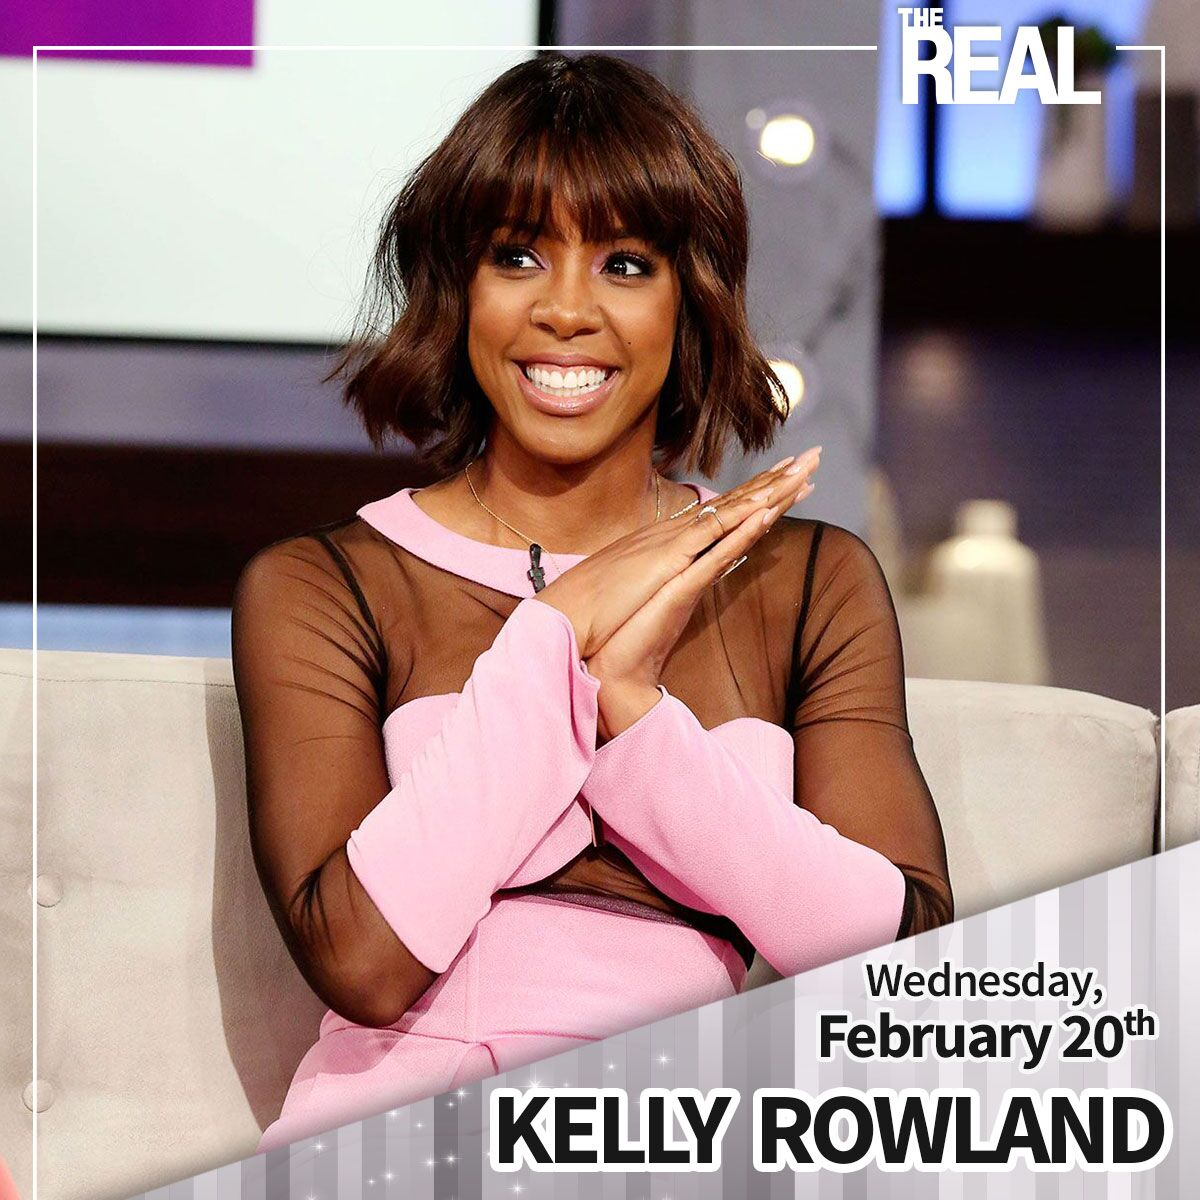 RT @TheRealDaytime: We can't wait to see you TOMORROW, @KellyRowland!! ???? https://t.co/mplCBq8cwP